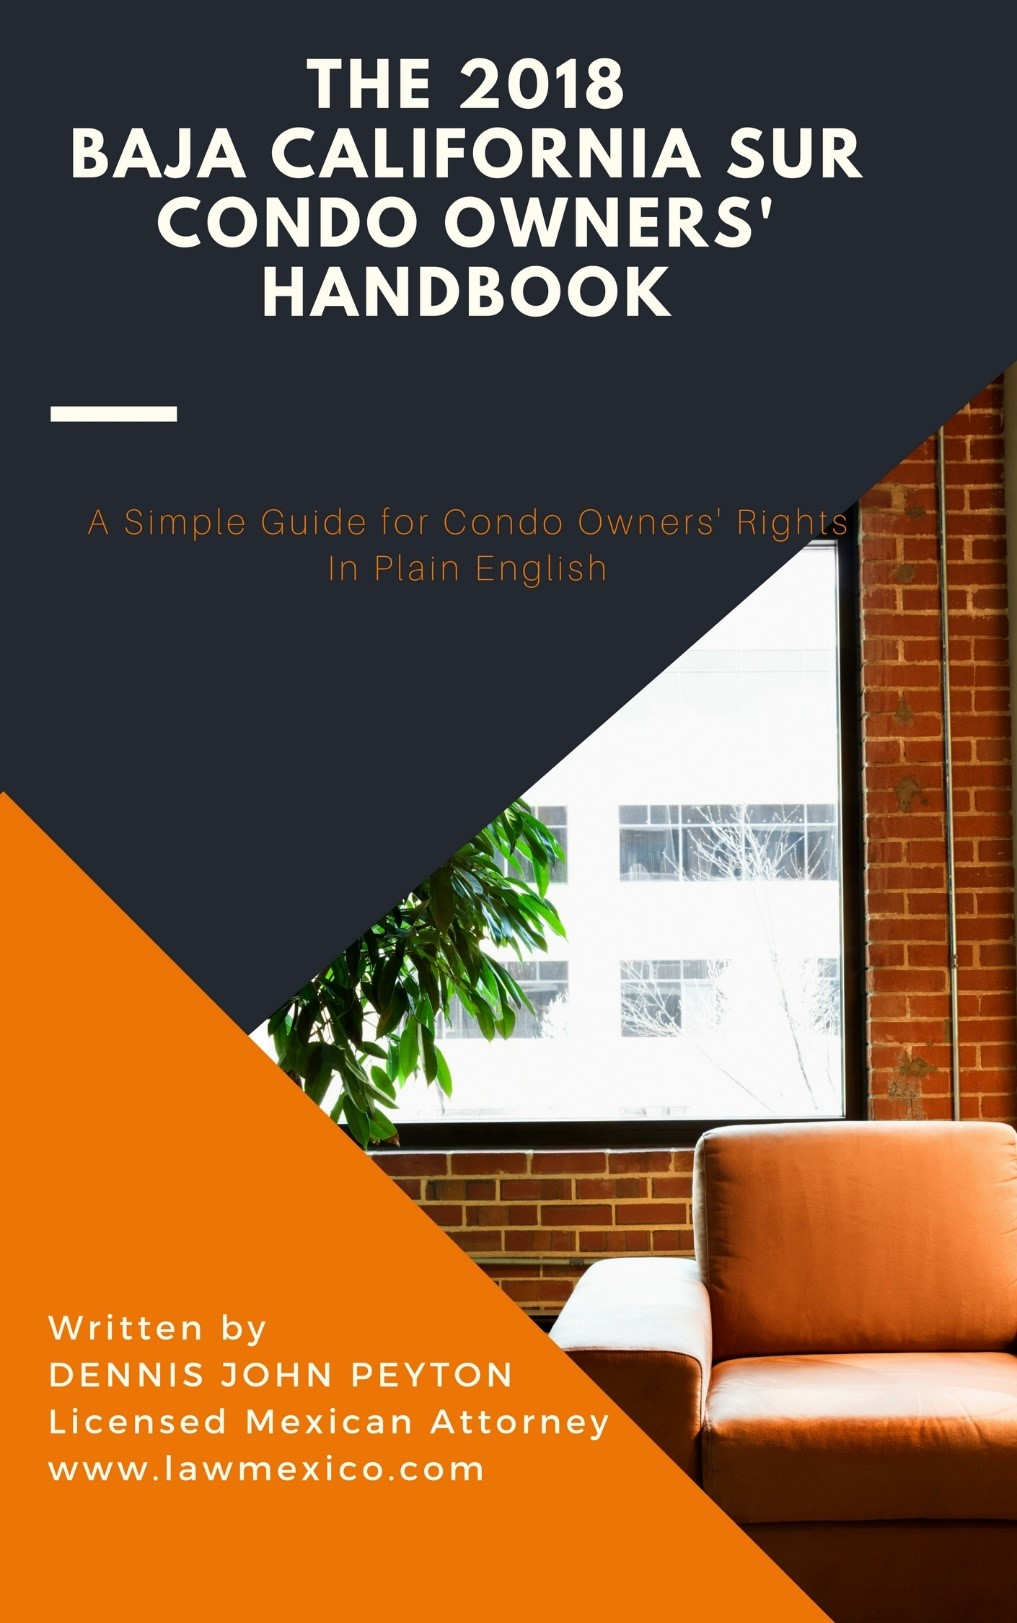 The 2018 Baja California Sur Condo Owners' Handbook